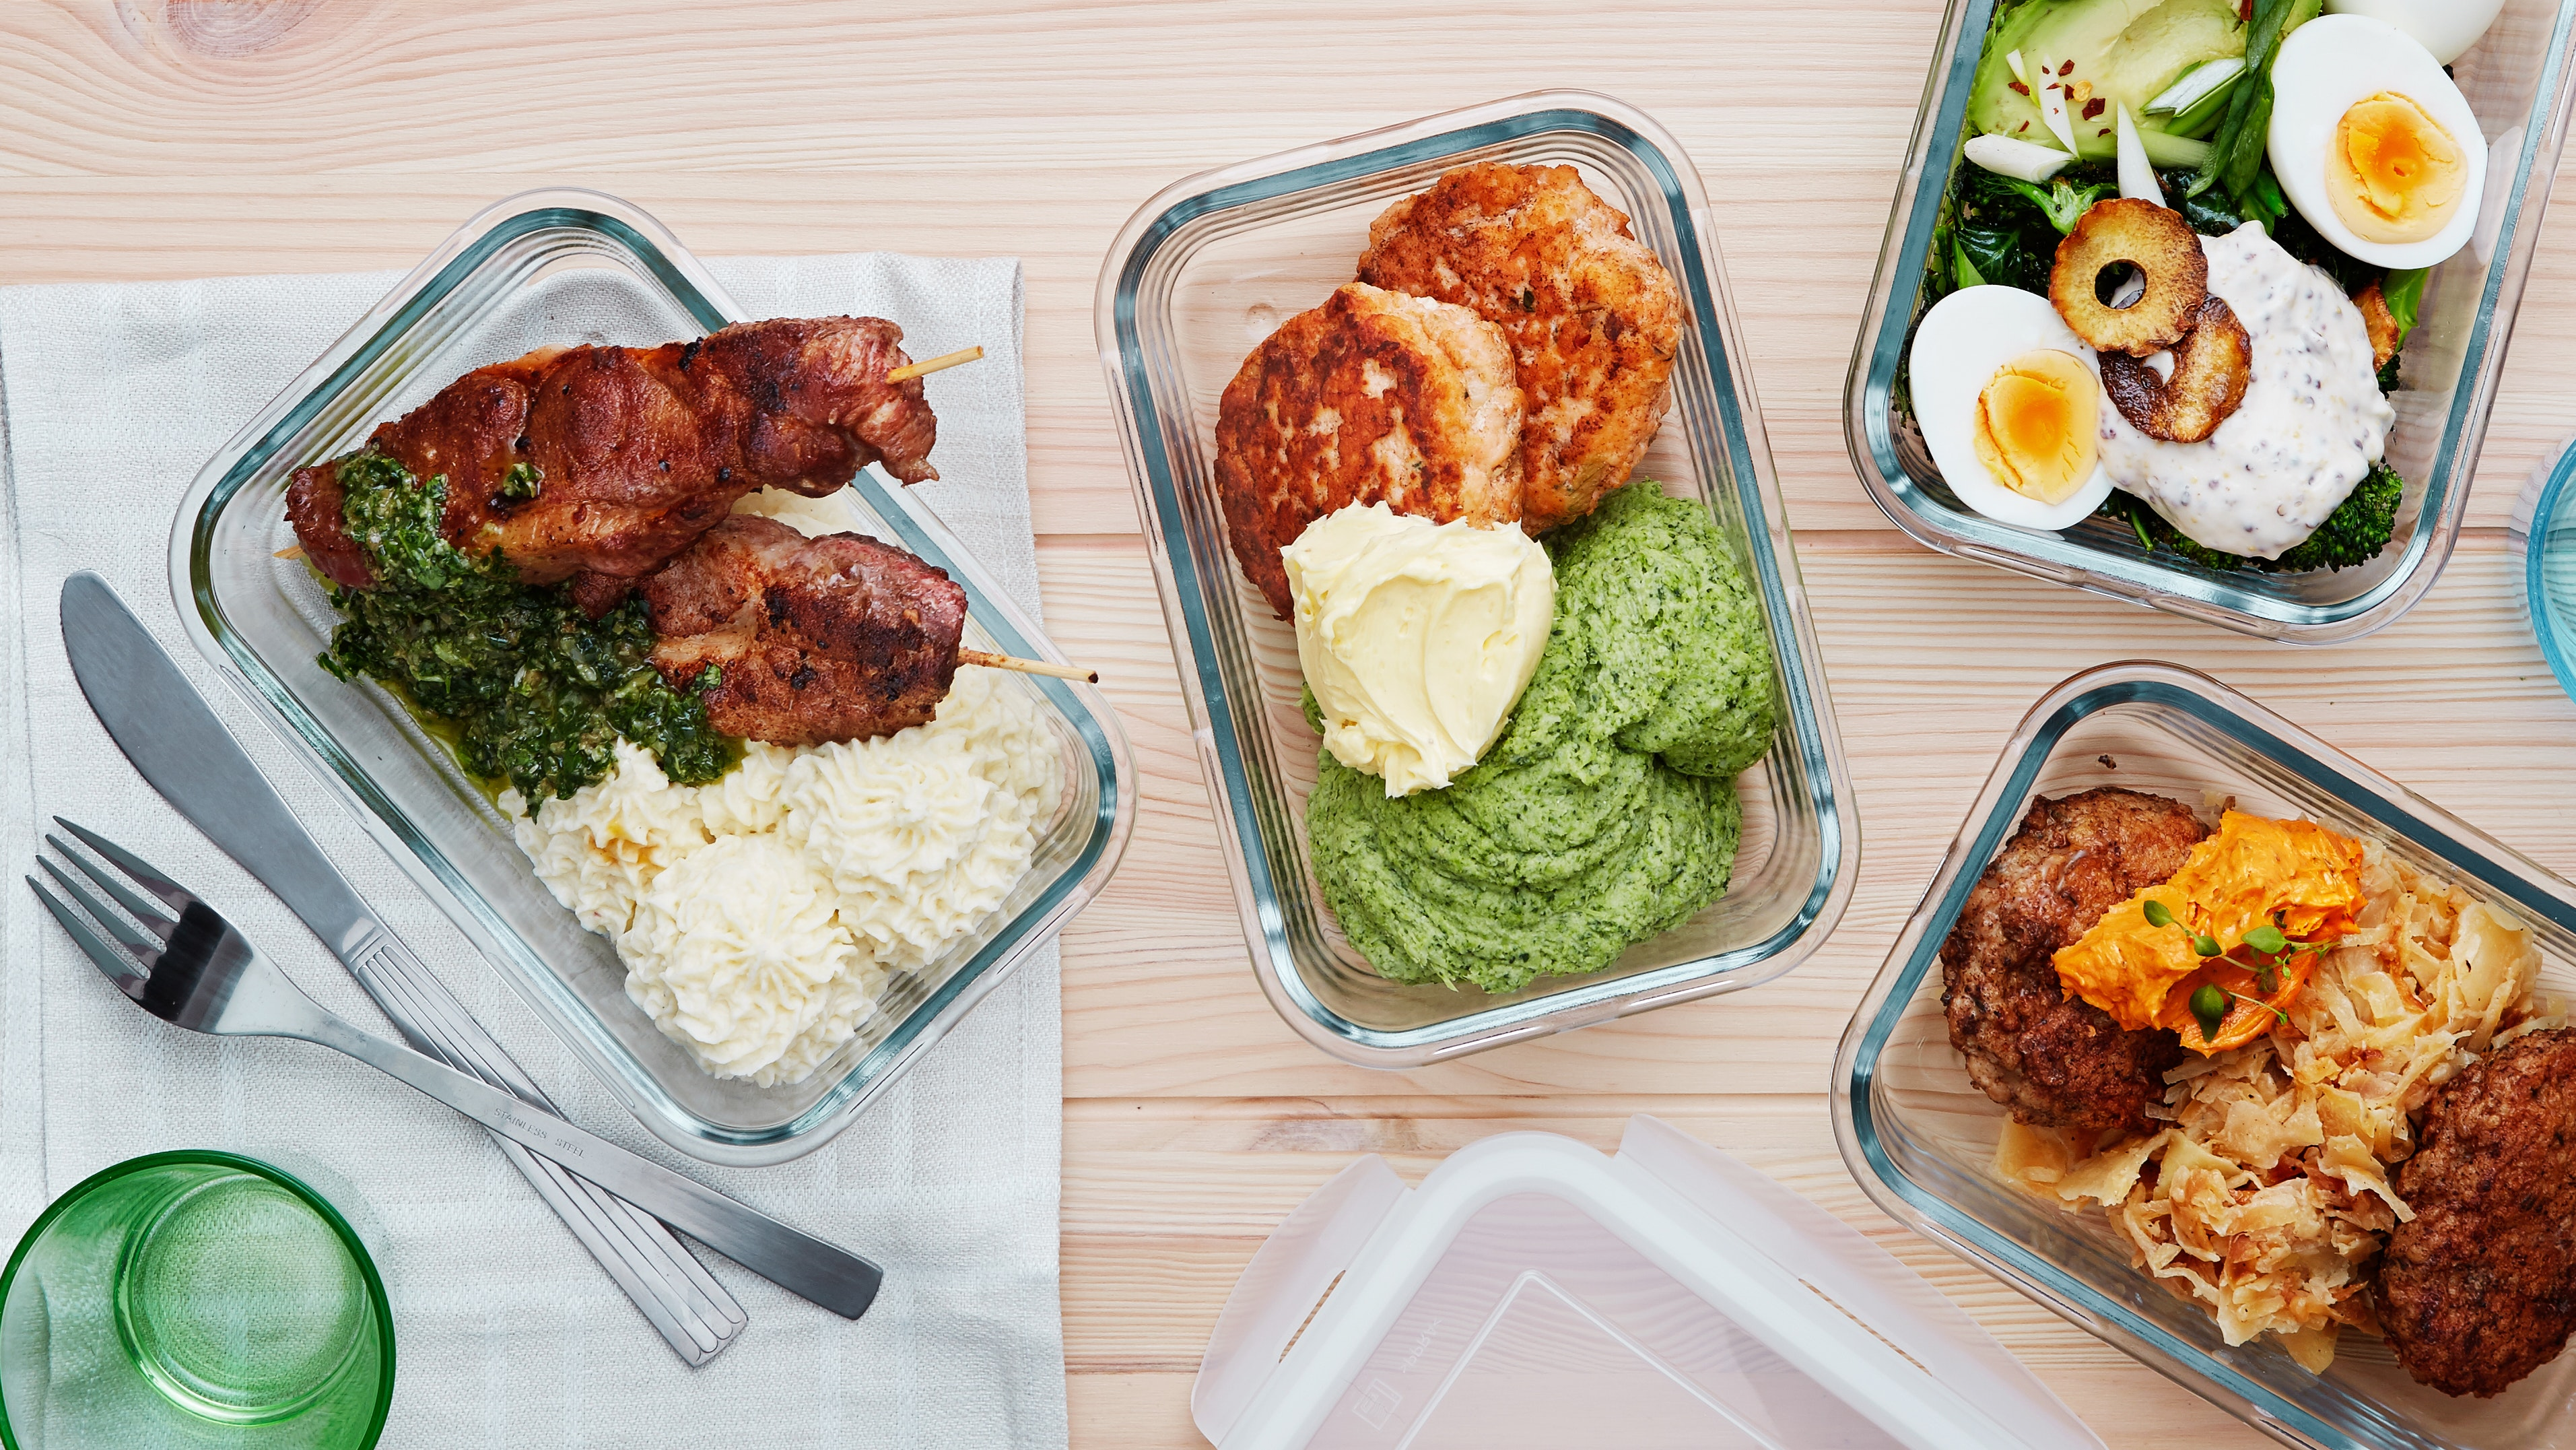 Healthy packed lunch ideas for weight loss uk